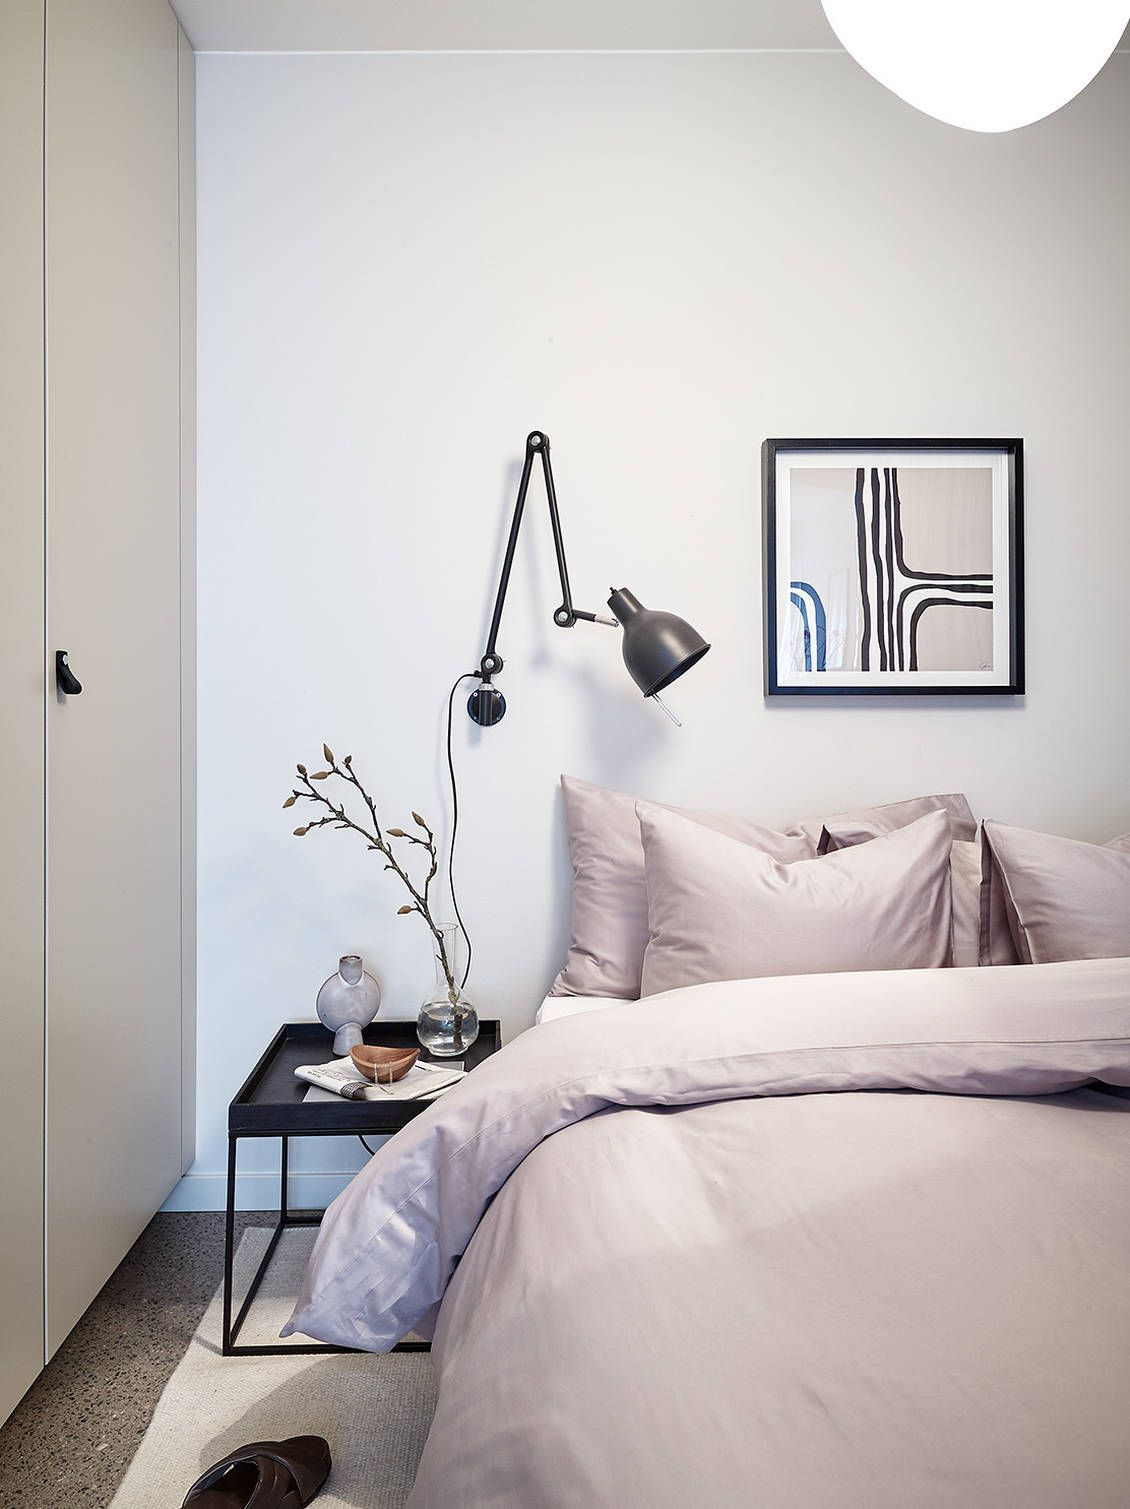 Modern Home With Beige Accents And Wall Arts Made With Diy Schlafzimmer Inspiration Wohnen Wohnung